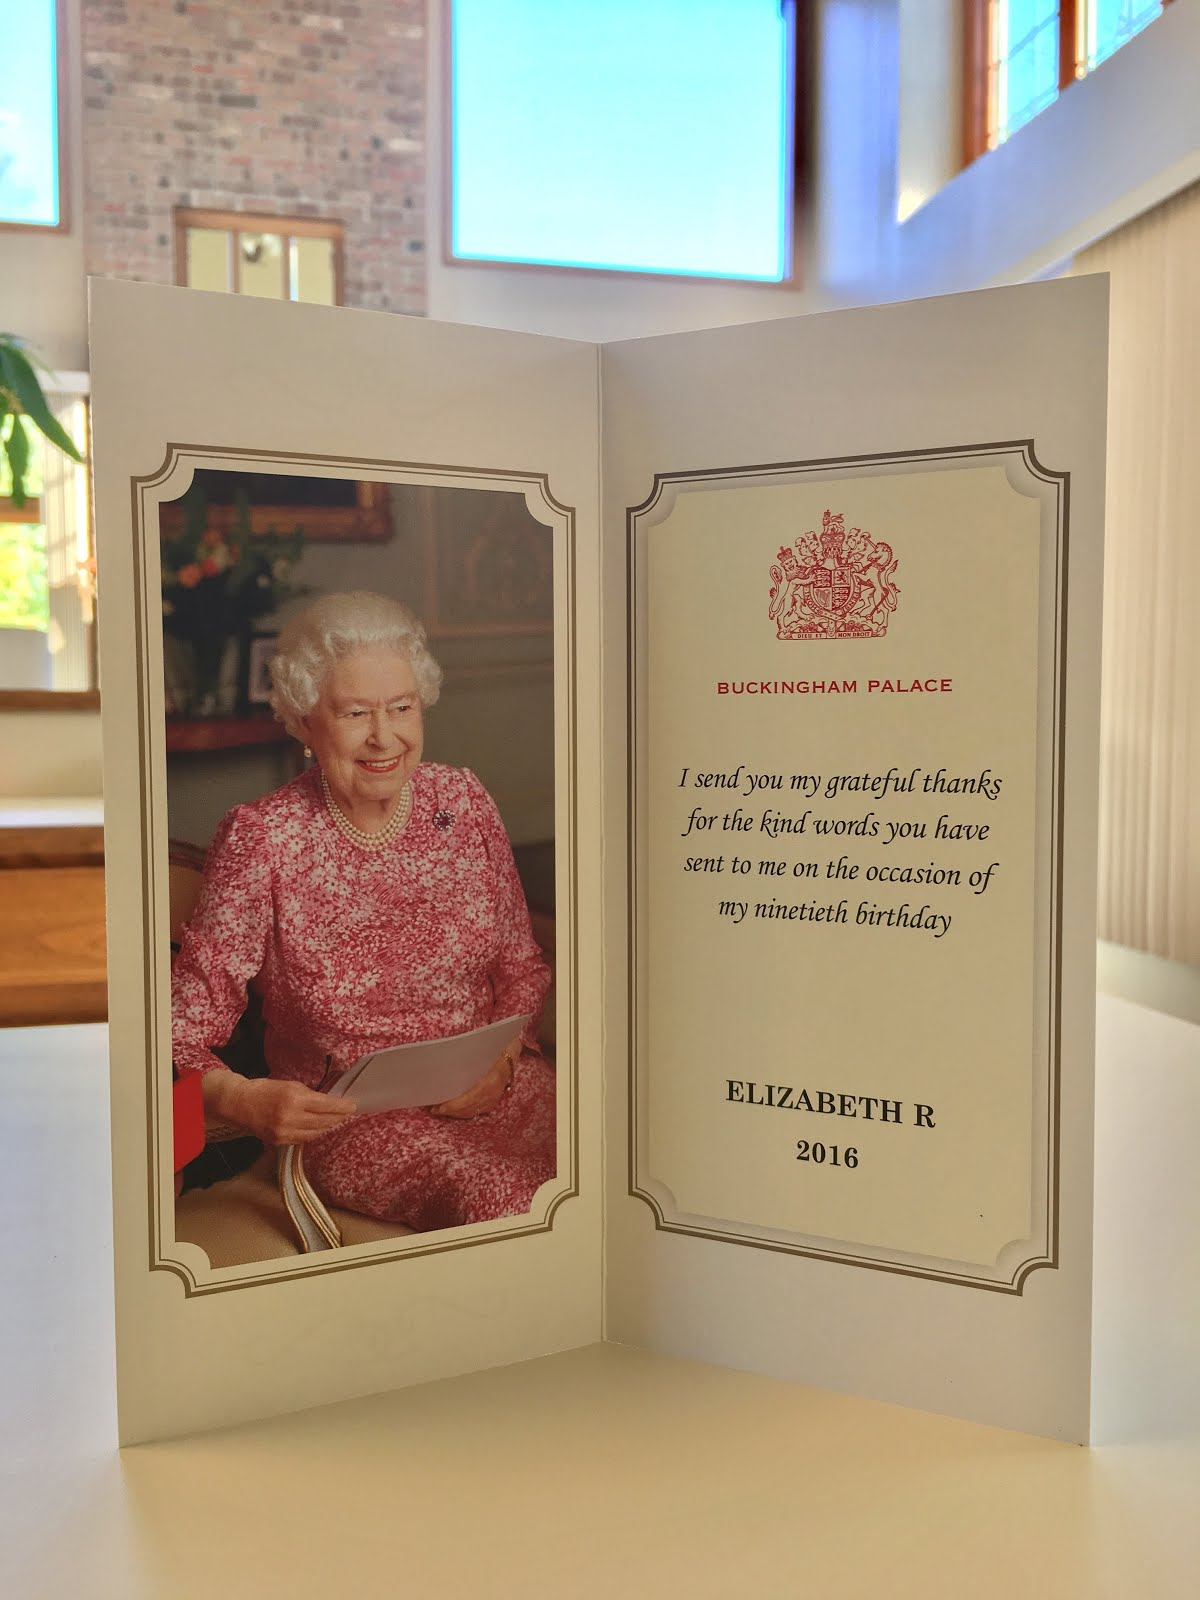 Gerts royals queen elizabeths 90th birthday reply the cards says buckingham palace i send you my grateful thanks for the kind words you have sent to me on the occasion of my ninetieth birthday bookmarktalkfo Choice Image